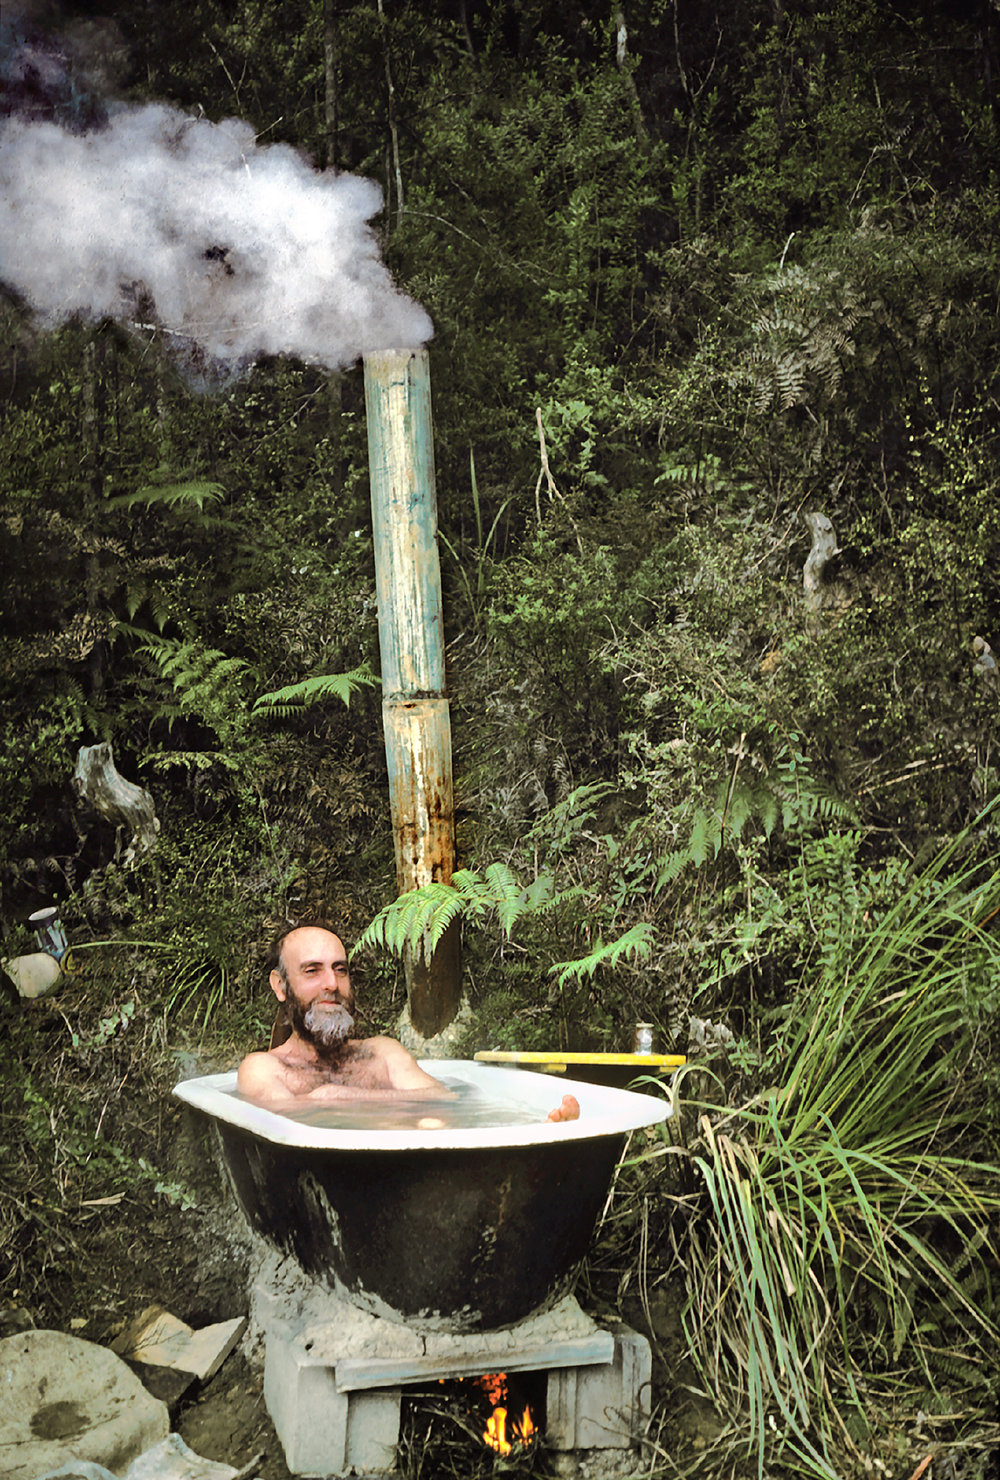 Hundertwasser: Jungle Bath, New Zealand 1978